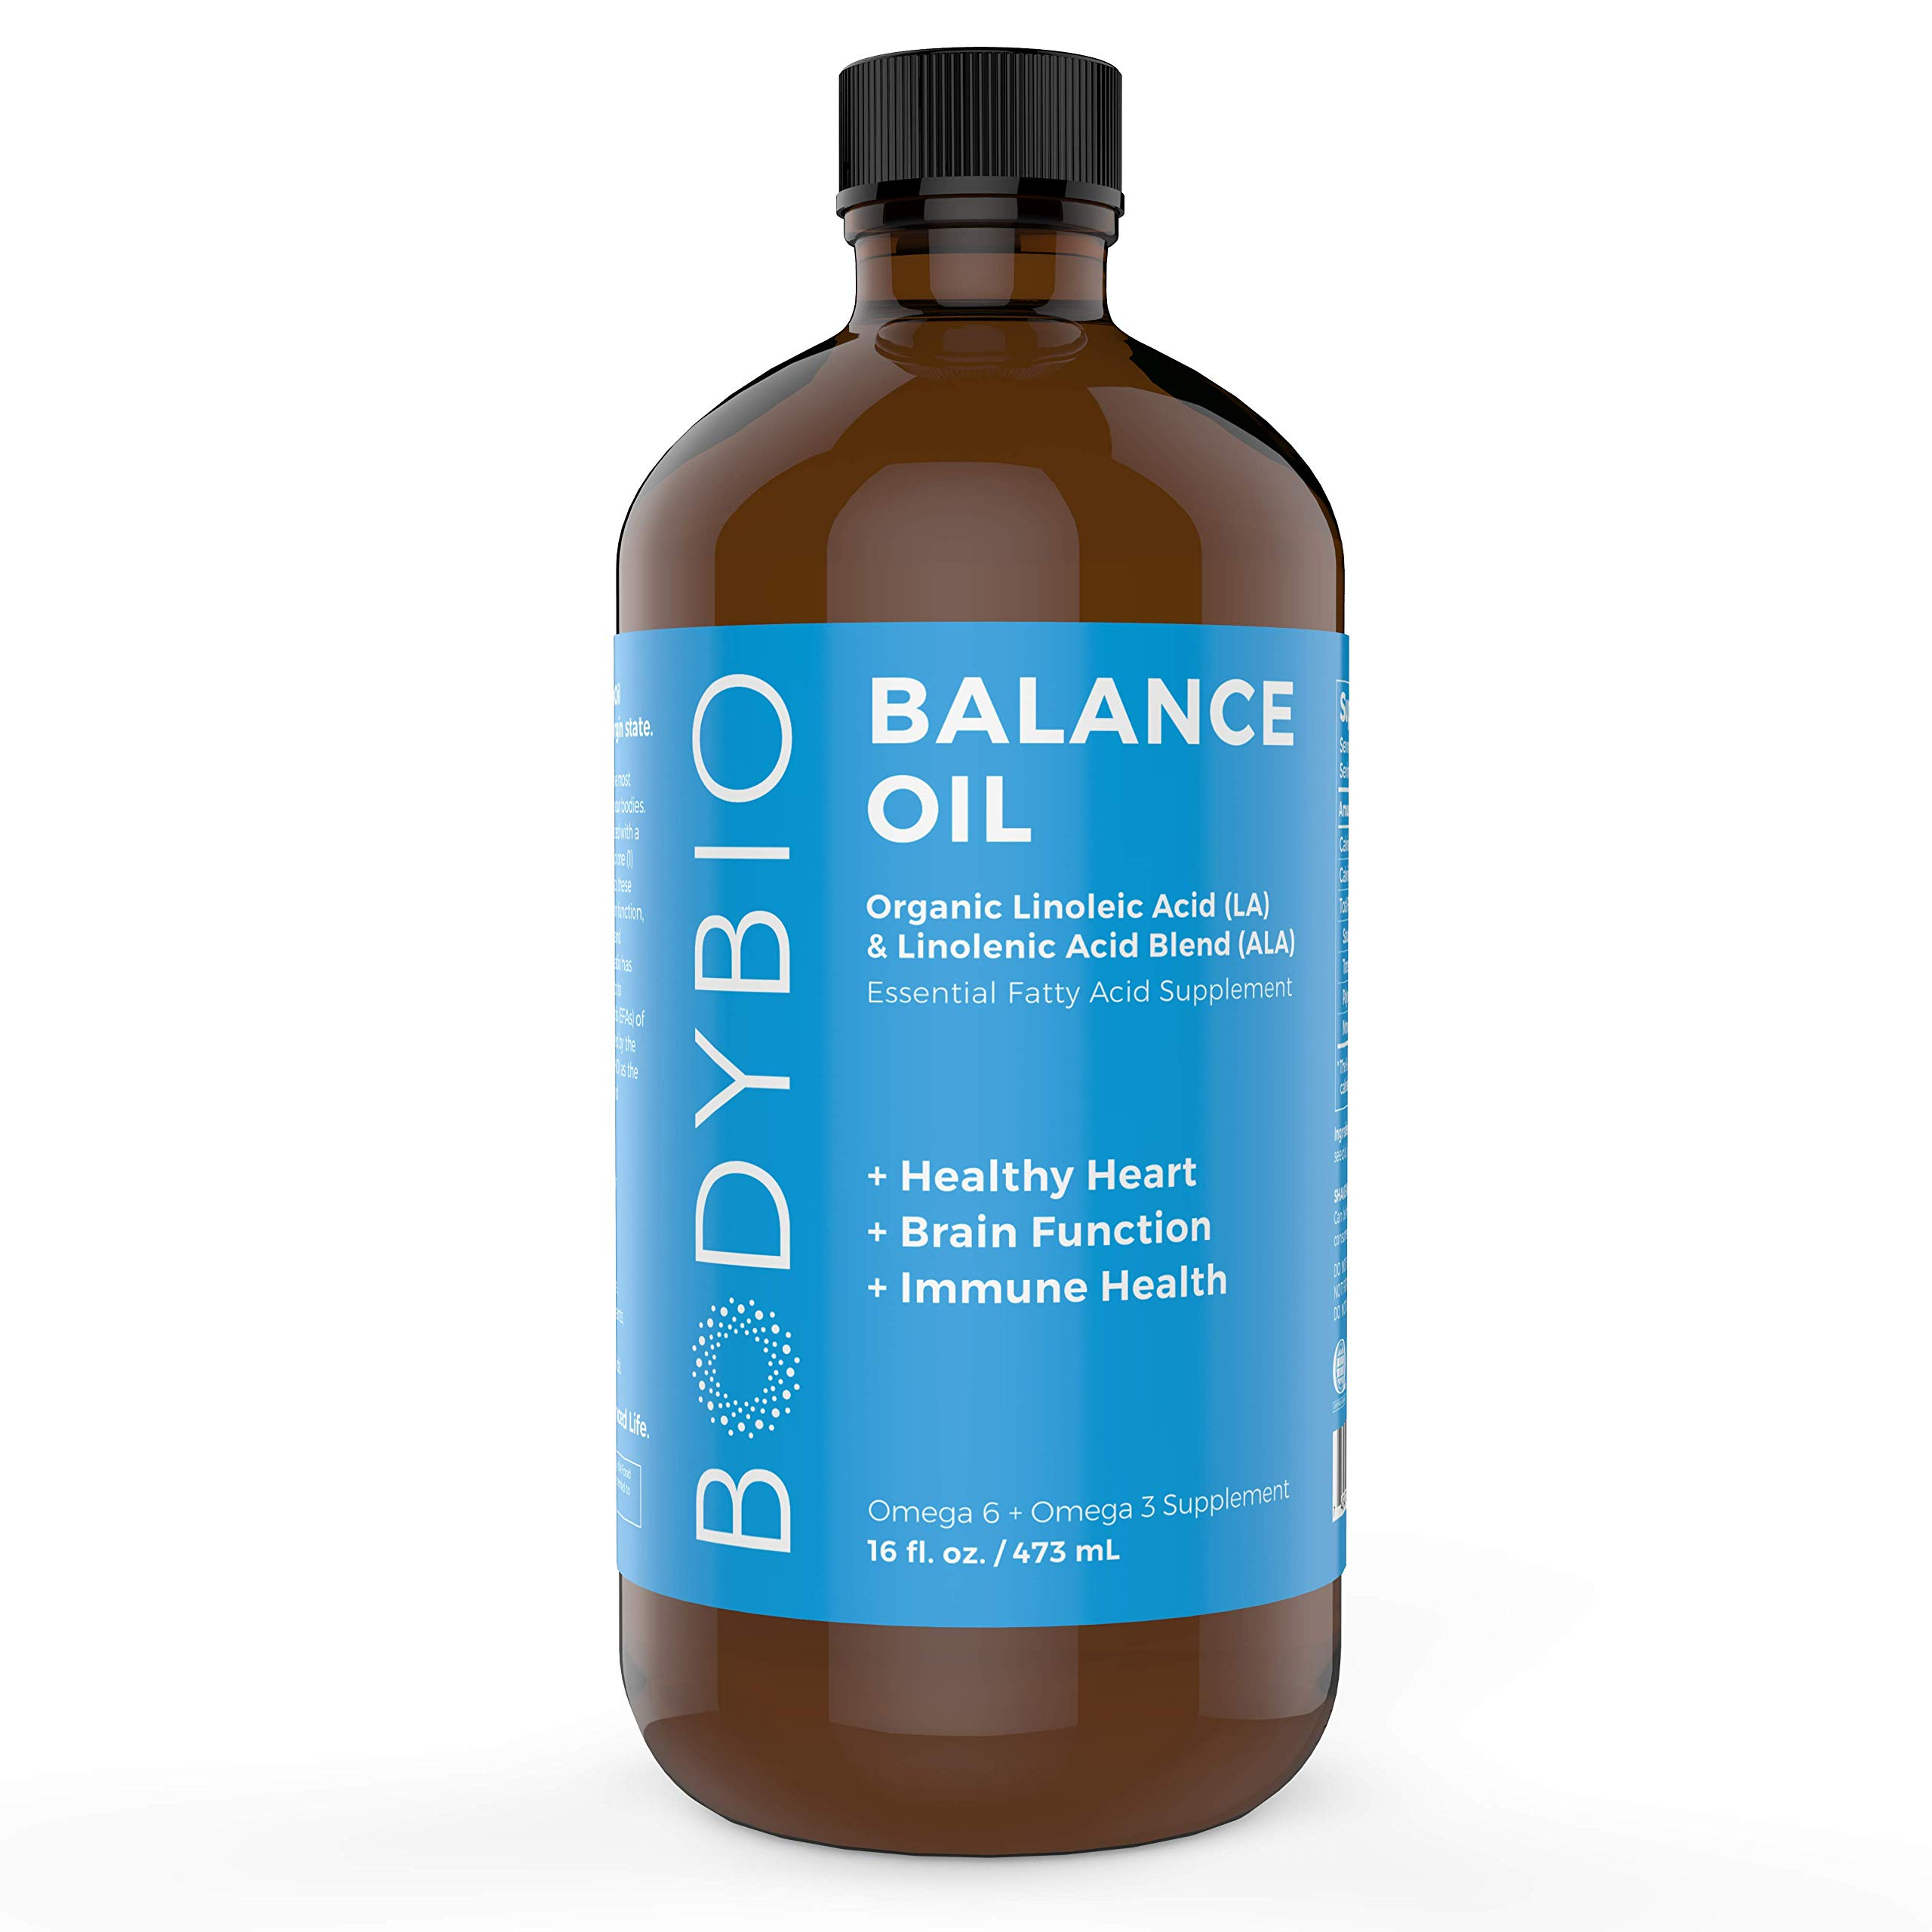 BodyBio Balance Oil - Essential Fatty Acids Omega 3 & 6 - Cold Pressed, Vegan, Organic Safflower and Flax Seed Oil Blend for Brain & Mood Support and Cellular Health, 16 oz